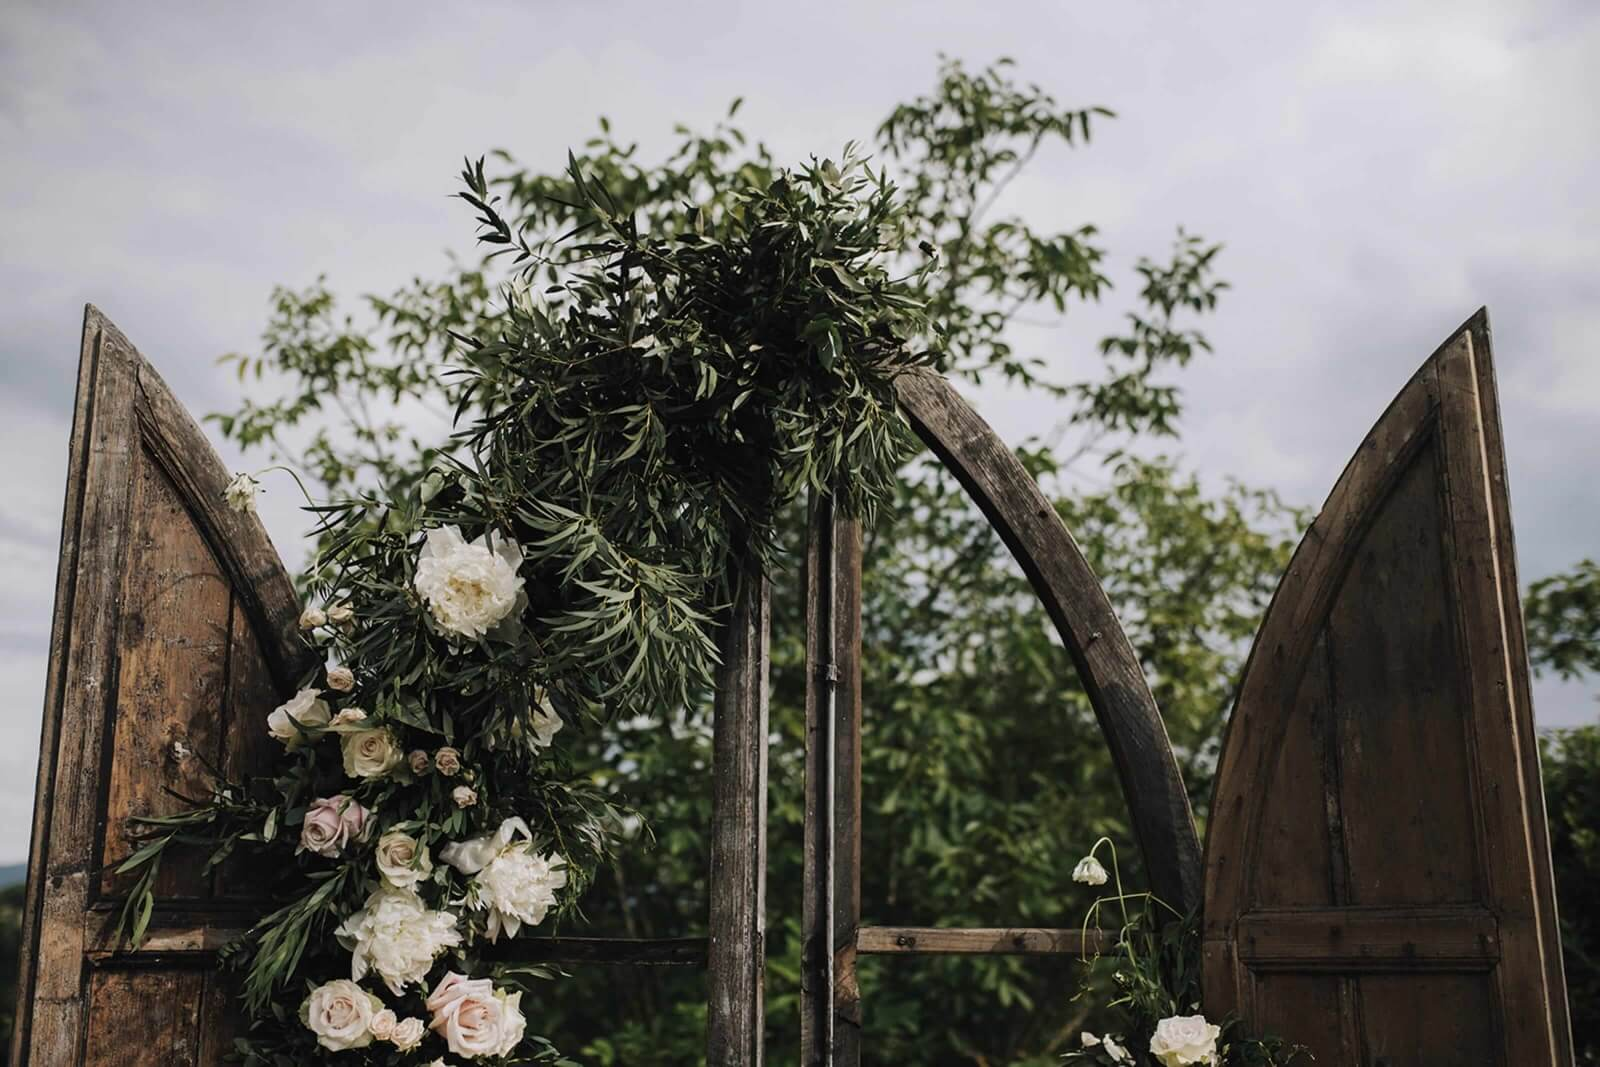 Destination Wedding in an ancient hamlet in Casentino, Tuscany. Olivia Sodi Professional Wedding Planner & Designer in Tuscany, Florence, Siena, Chianti, Val d'Orcia.